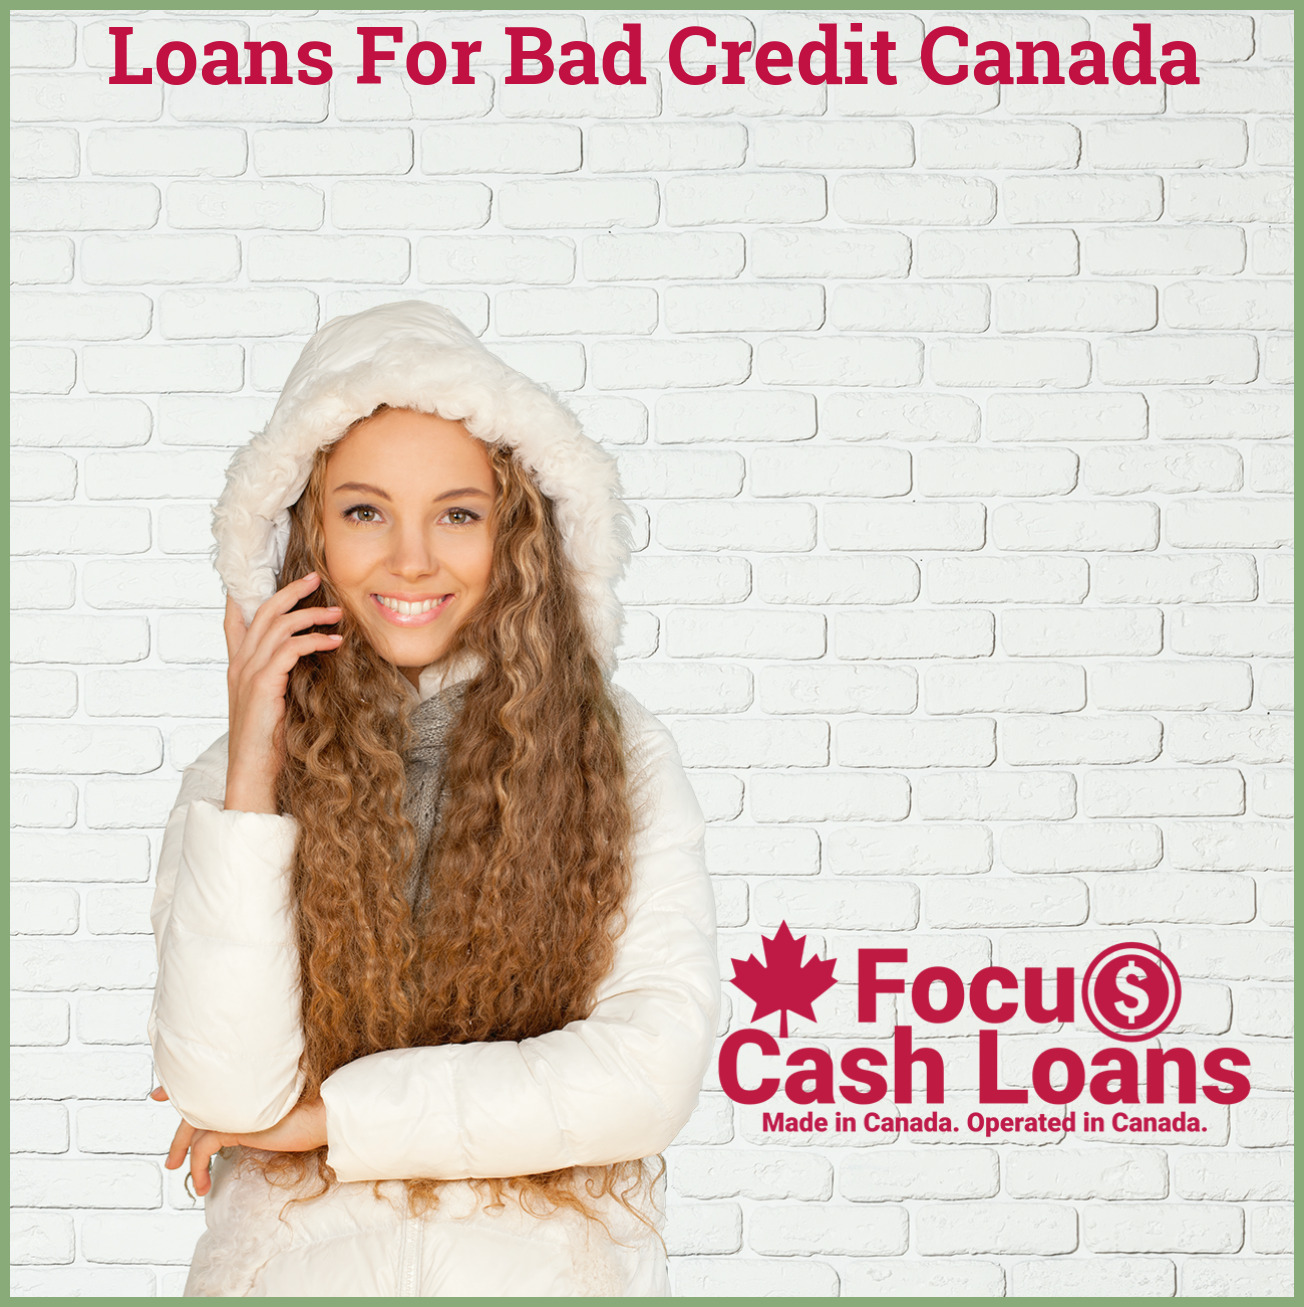 Related Bad Credit Loans Products